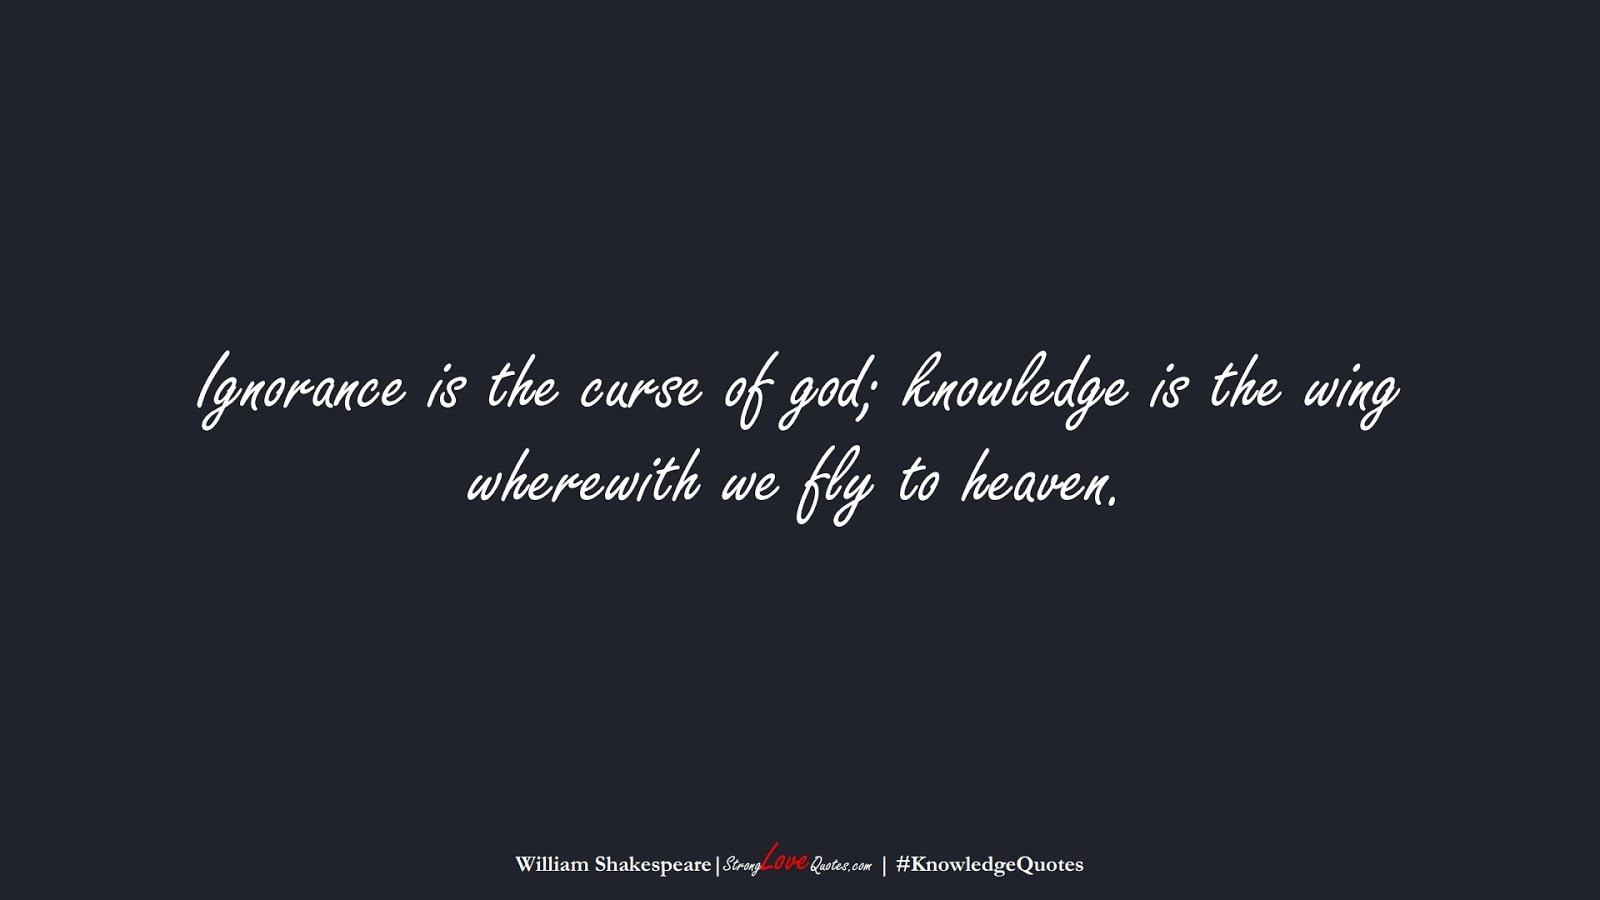 Ignorance is the curse of god; knowledge is the wing wherewith we fly to heaven. (William Shakespeare);  #KnowledgeQuotes